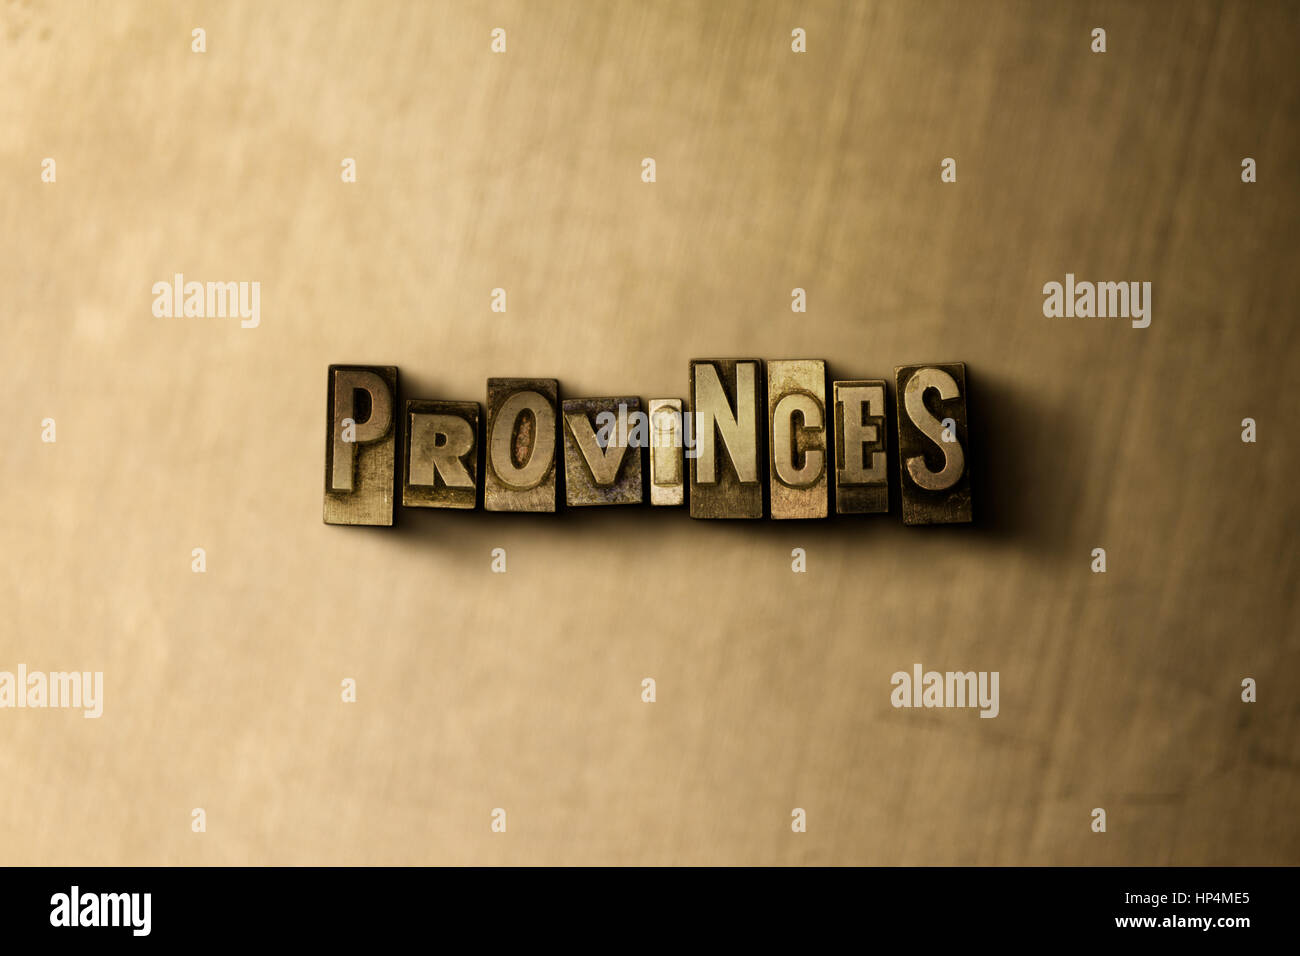 PROVINCES - close-up of grungy vintage typeset word on metal backdrop. Royalty free stock illustration.  Can be - Stock Image